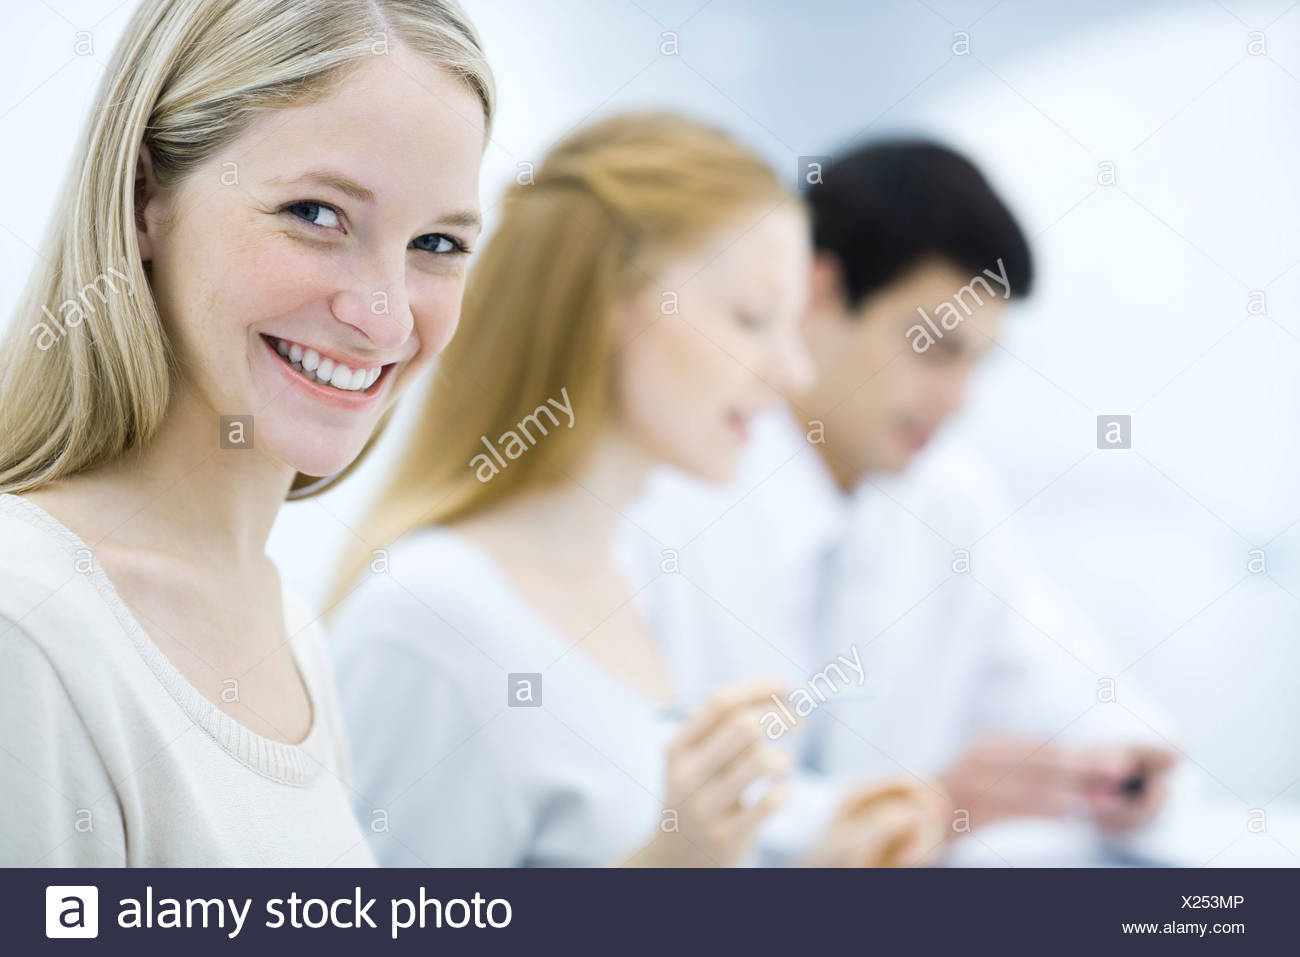 Young professional woman smiling at camera, colleagues working in background - Stock Image